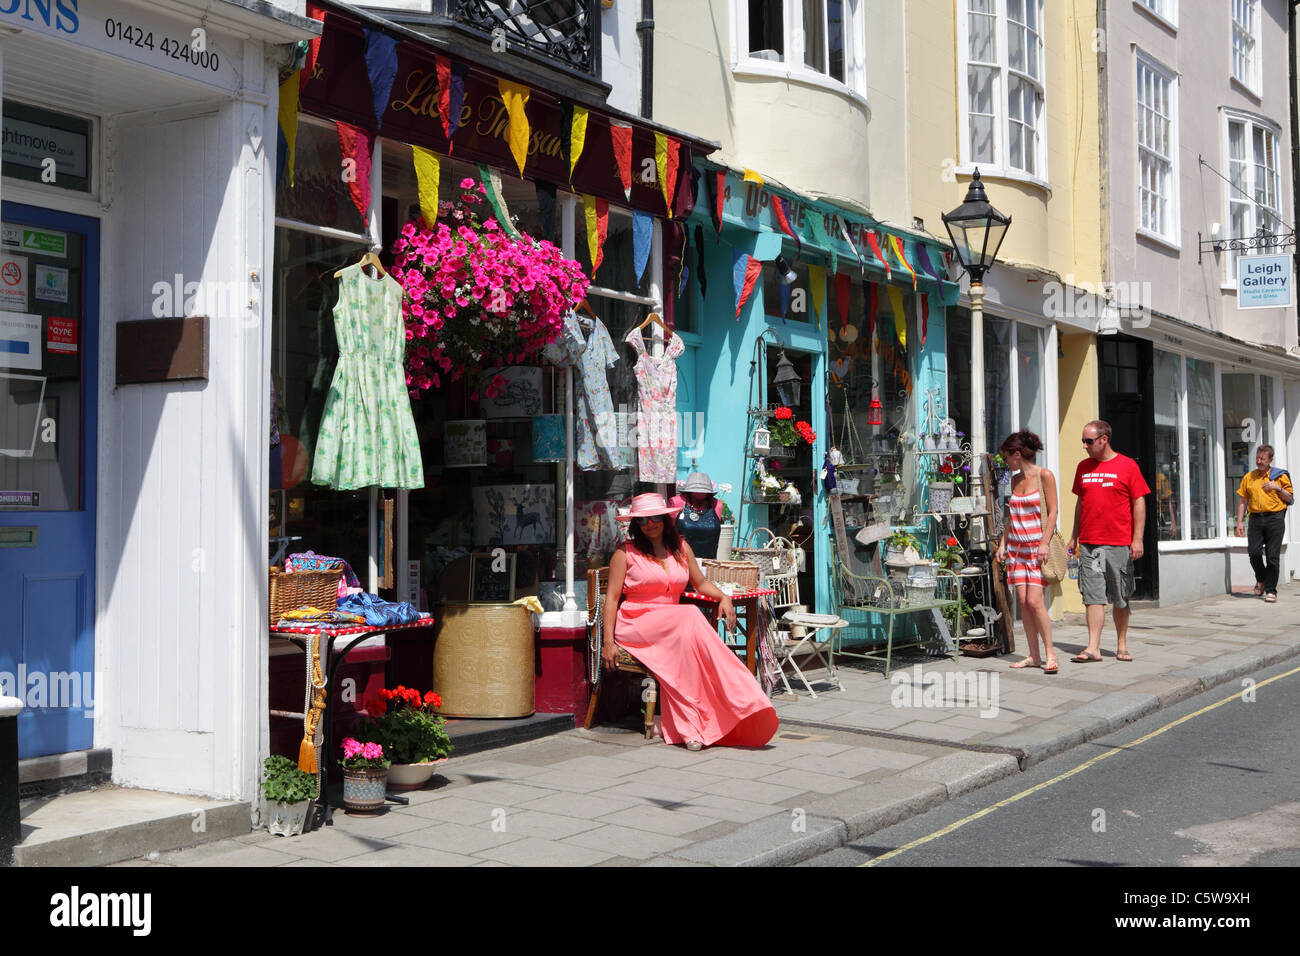 Vintage clothing and collectibles shops in Hastings Old Town, East Sussex, England, UK, GB - Stock Image